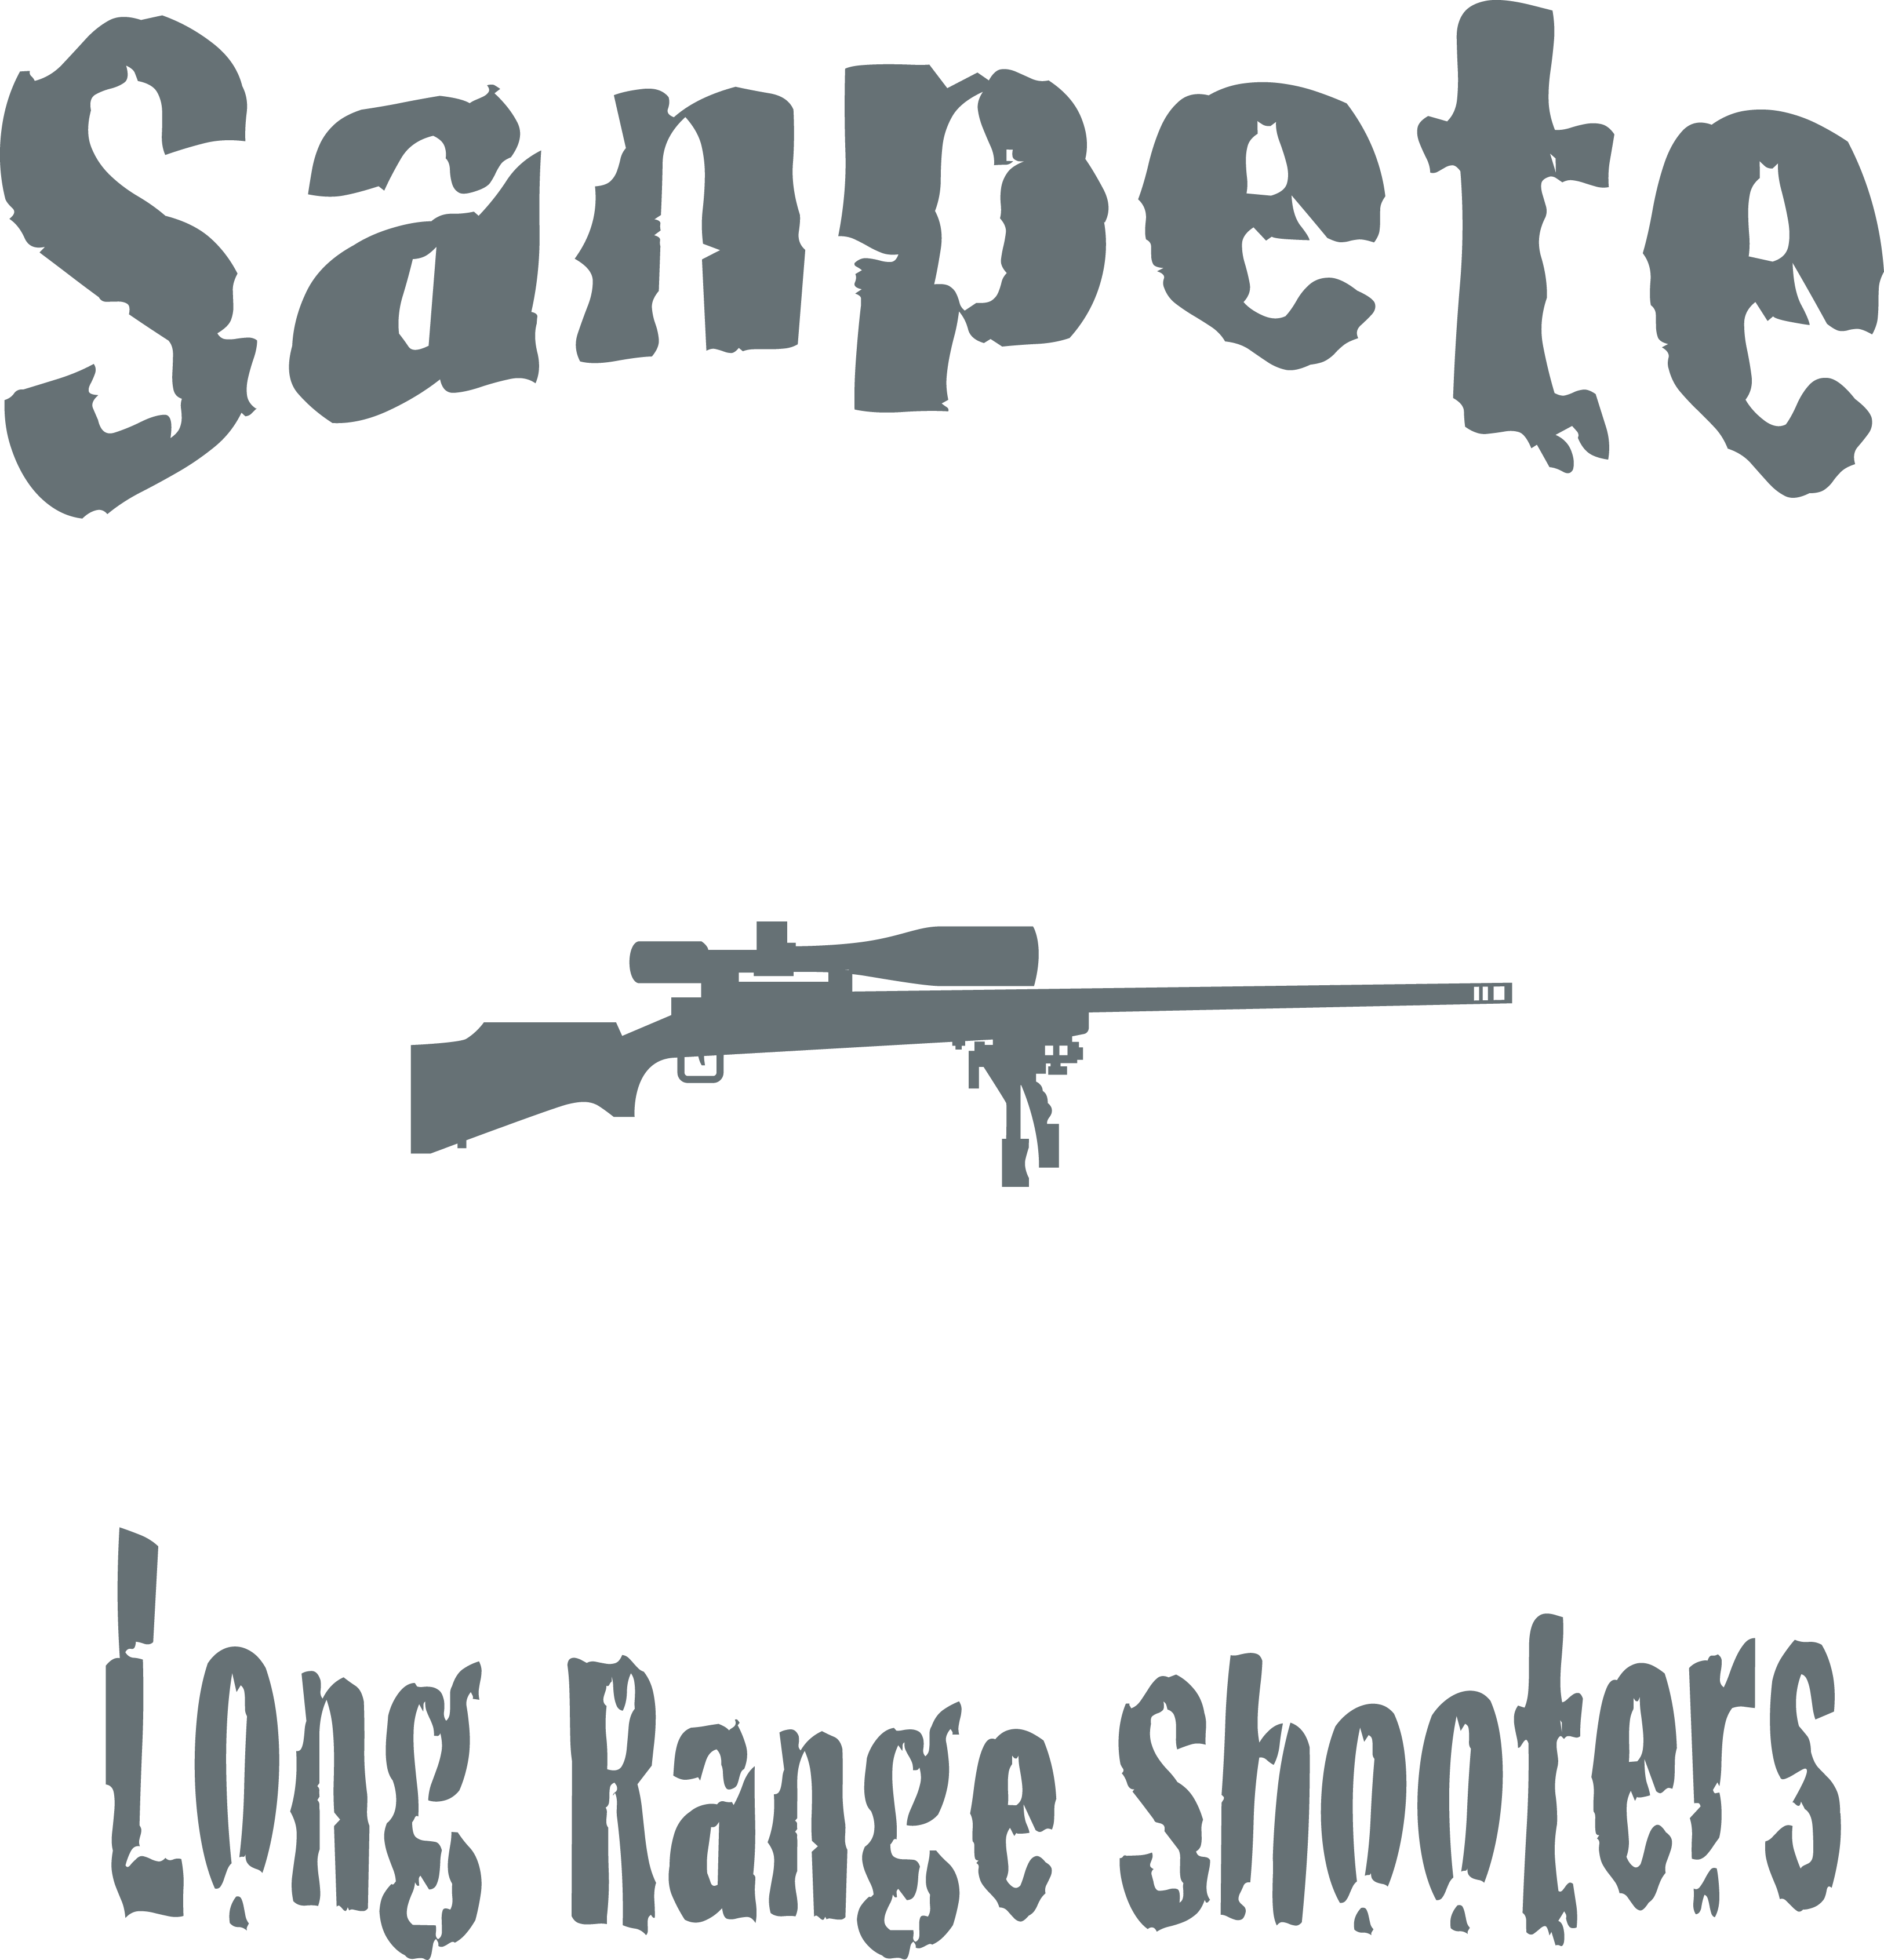 Sanpete Long Range Shooters